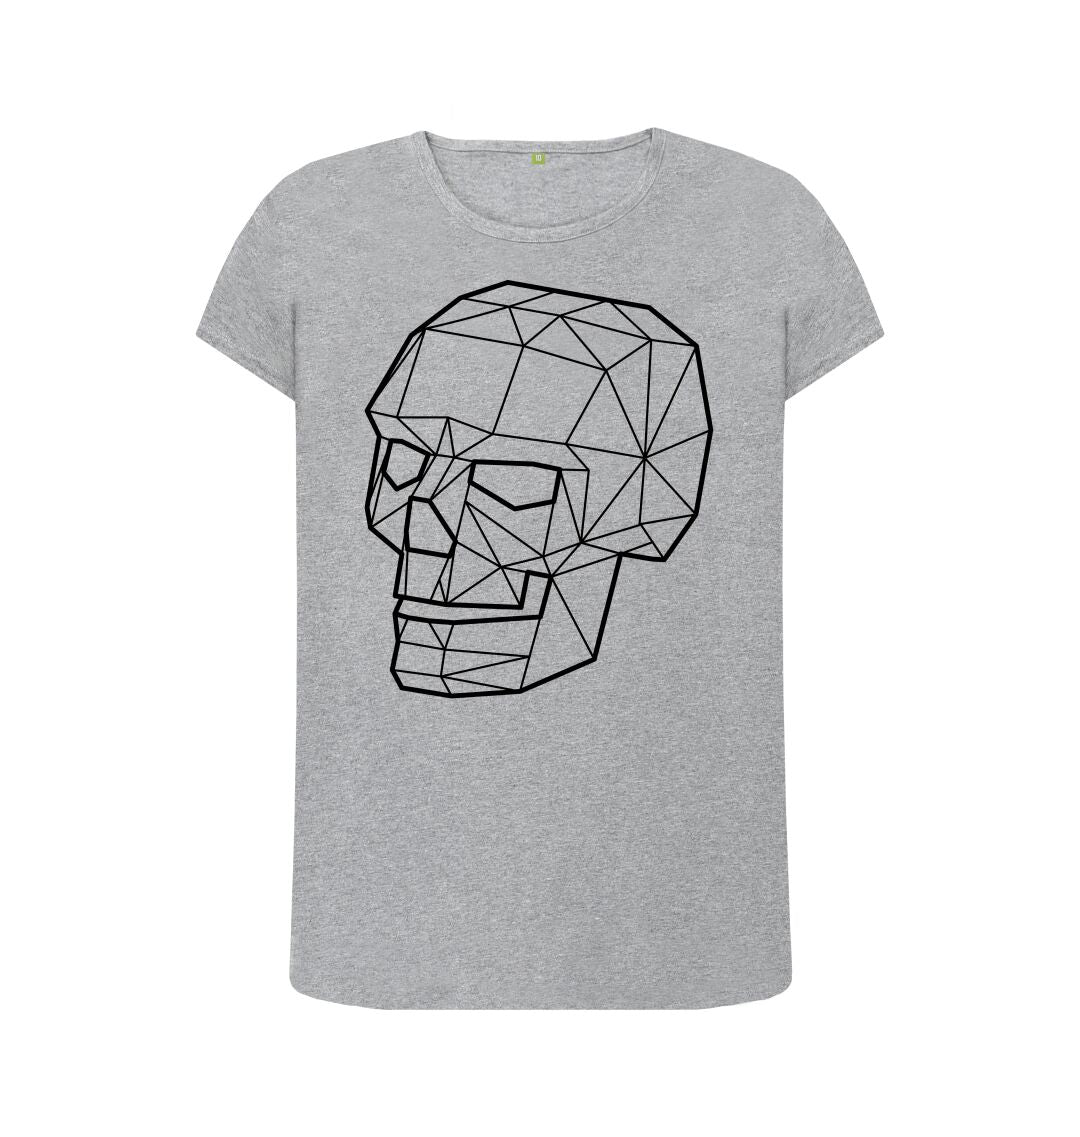 Skull T-shirt (Female)